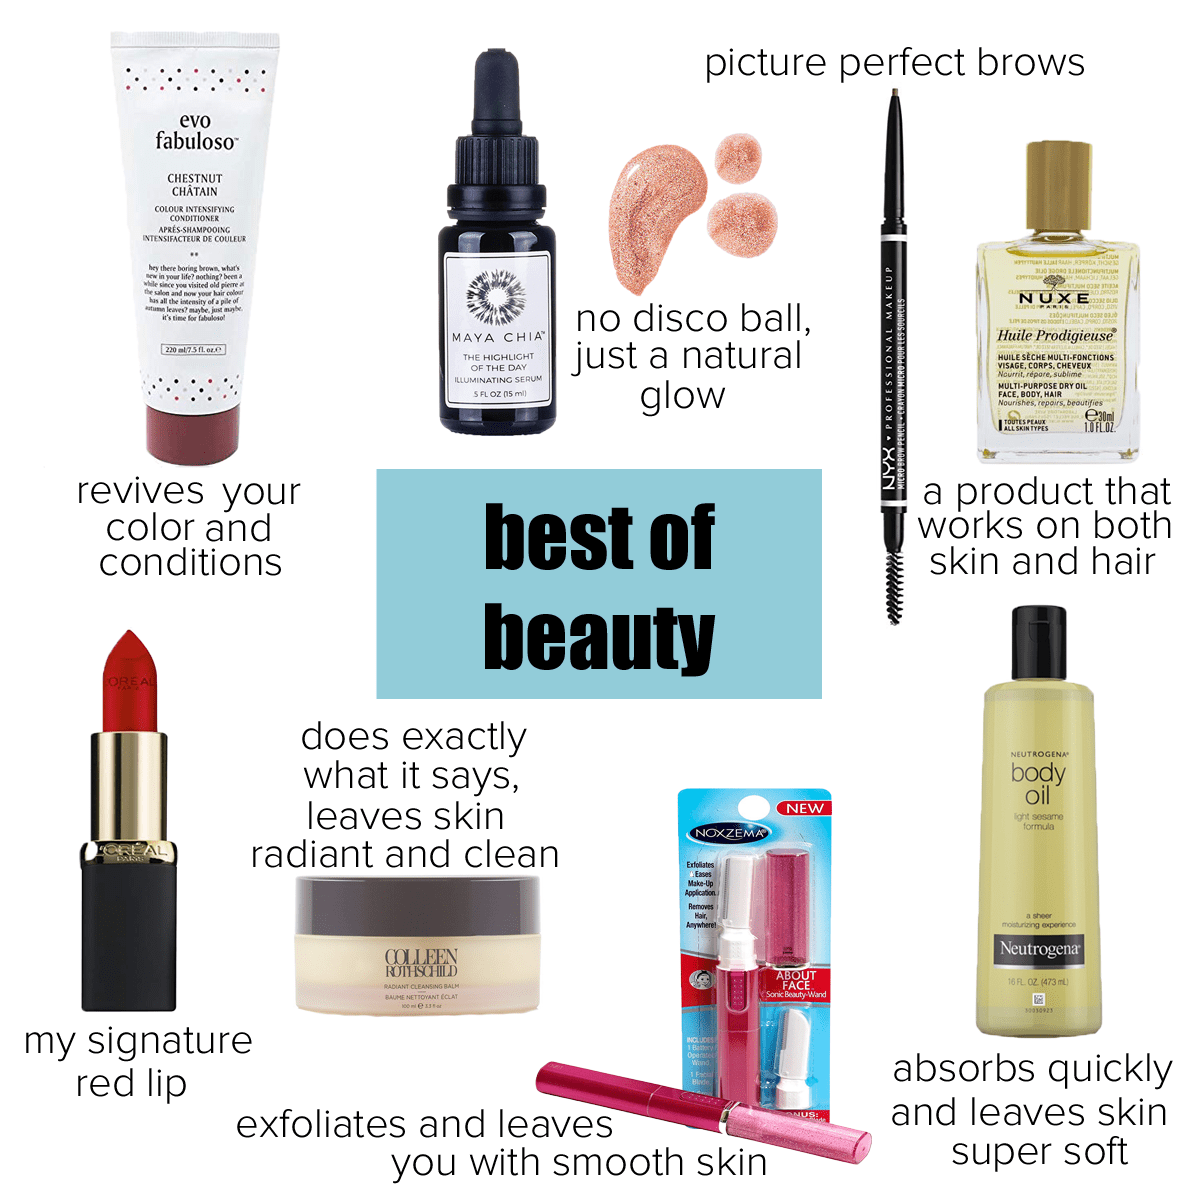 Alison's Favorite Things of 2018: The best of beauty